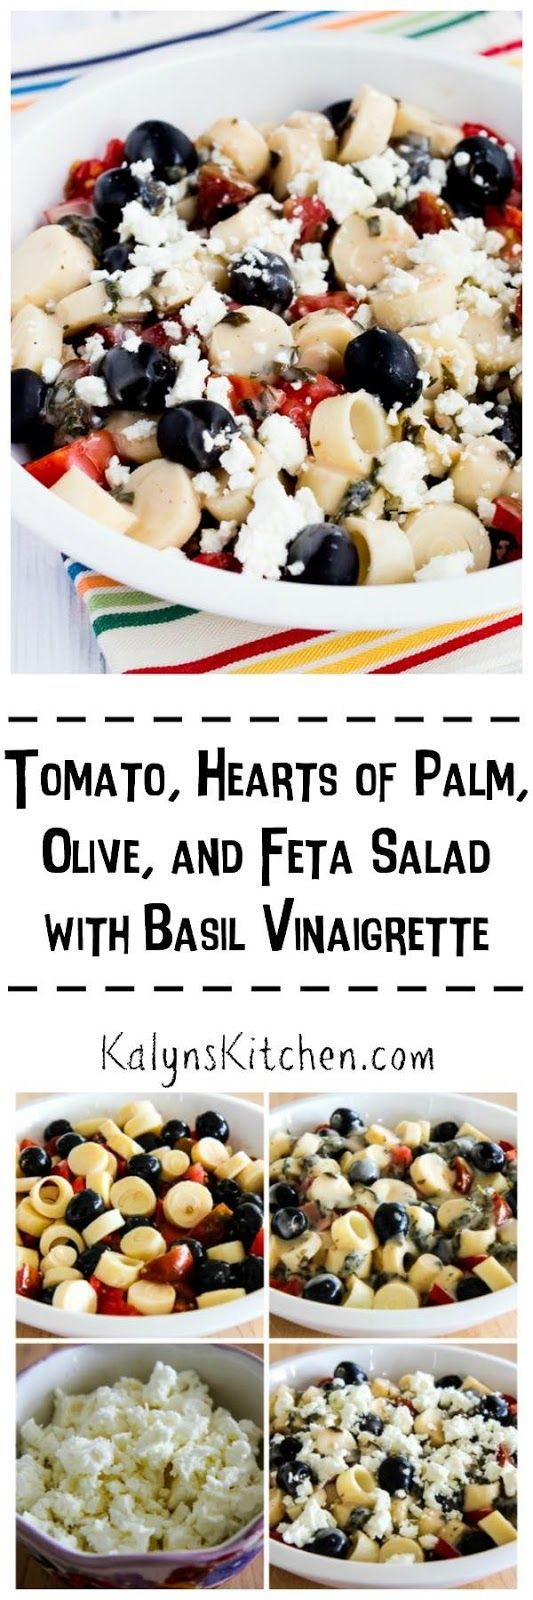 Make this Tomato, Hearts of Palm, Olive, and Feta Salad with Basil Vinaigrette NOW while you can still get these amazing summer flavors! [found on KalynsKitchen.com]